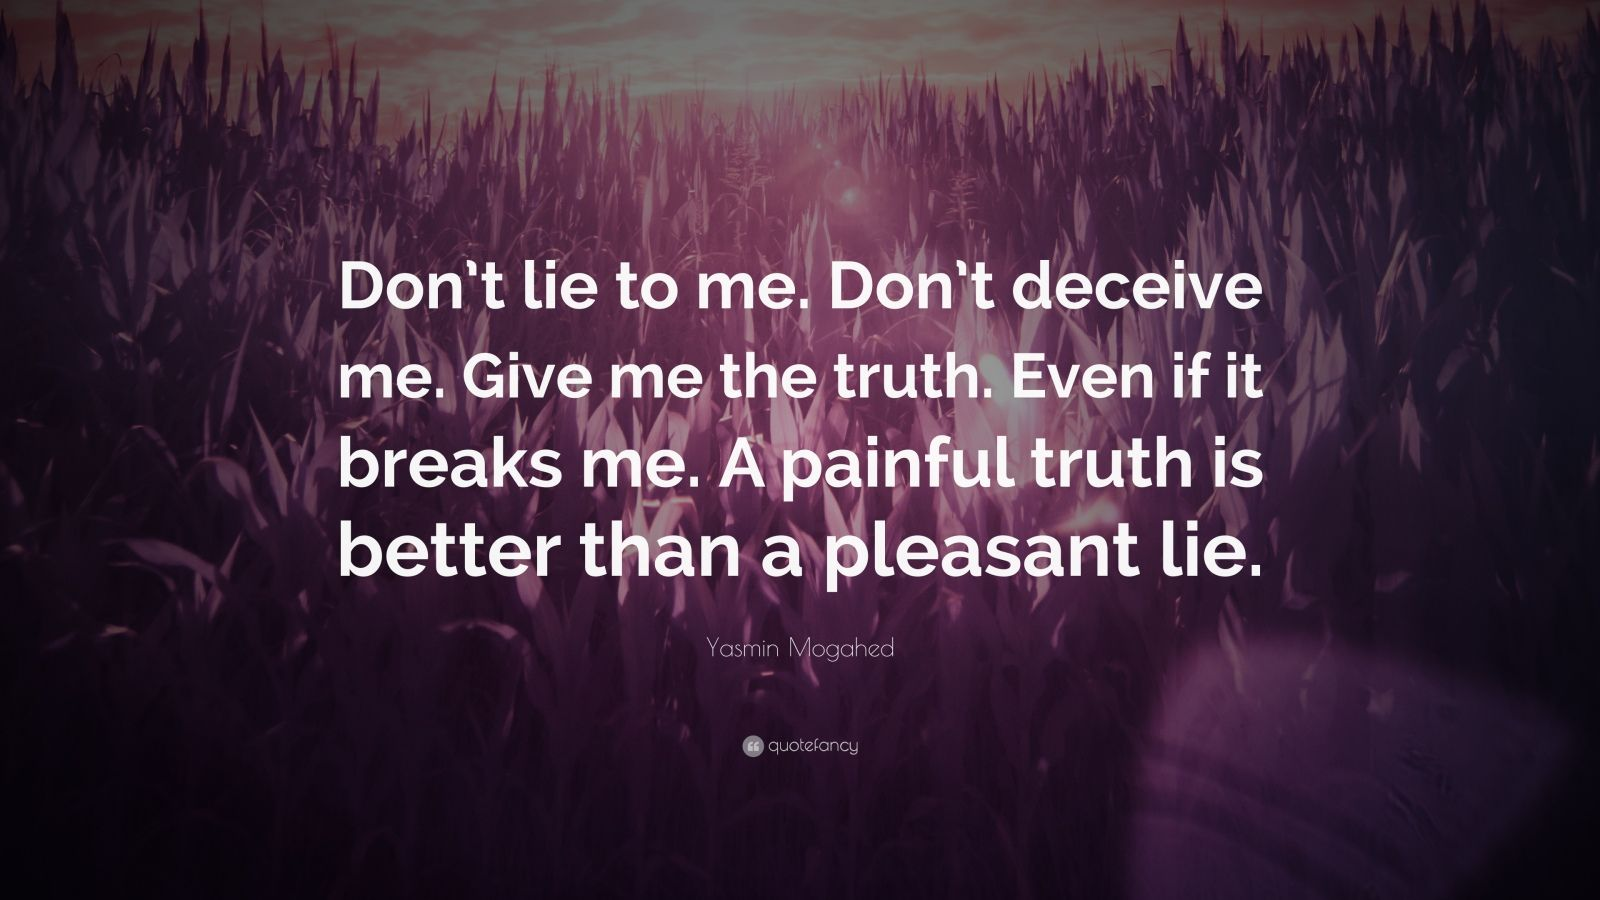 """Yasmin Mogahed Quote: """"Don't lie to me. Don't deceive me. Give me the truth. Even if it breaks me. A painful truth is better than a pleasant lie."""""""